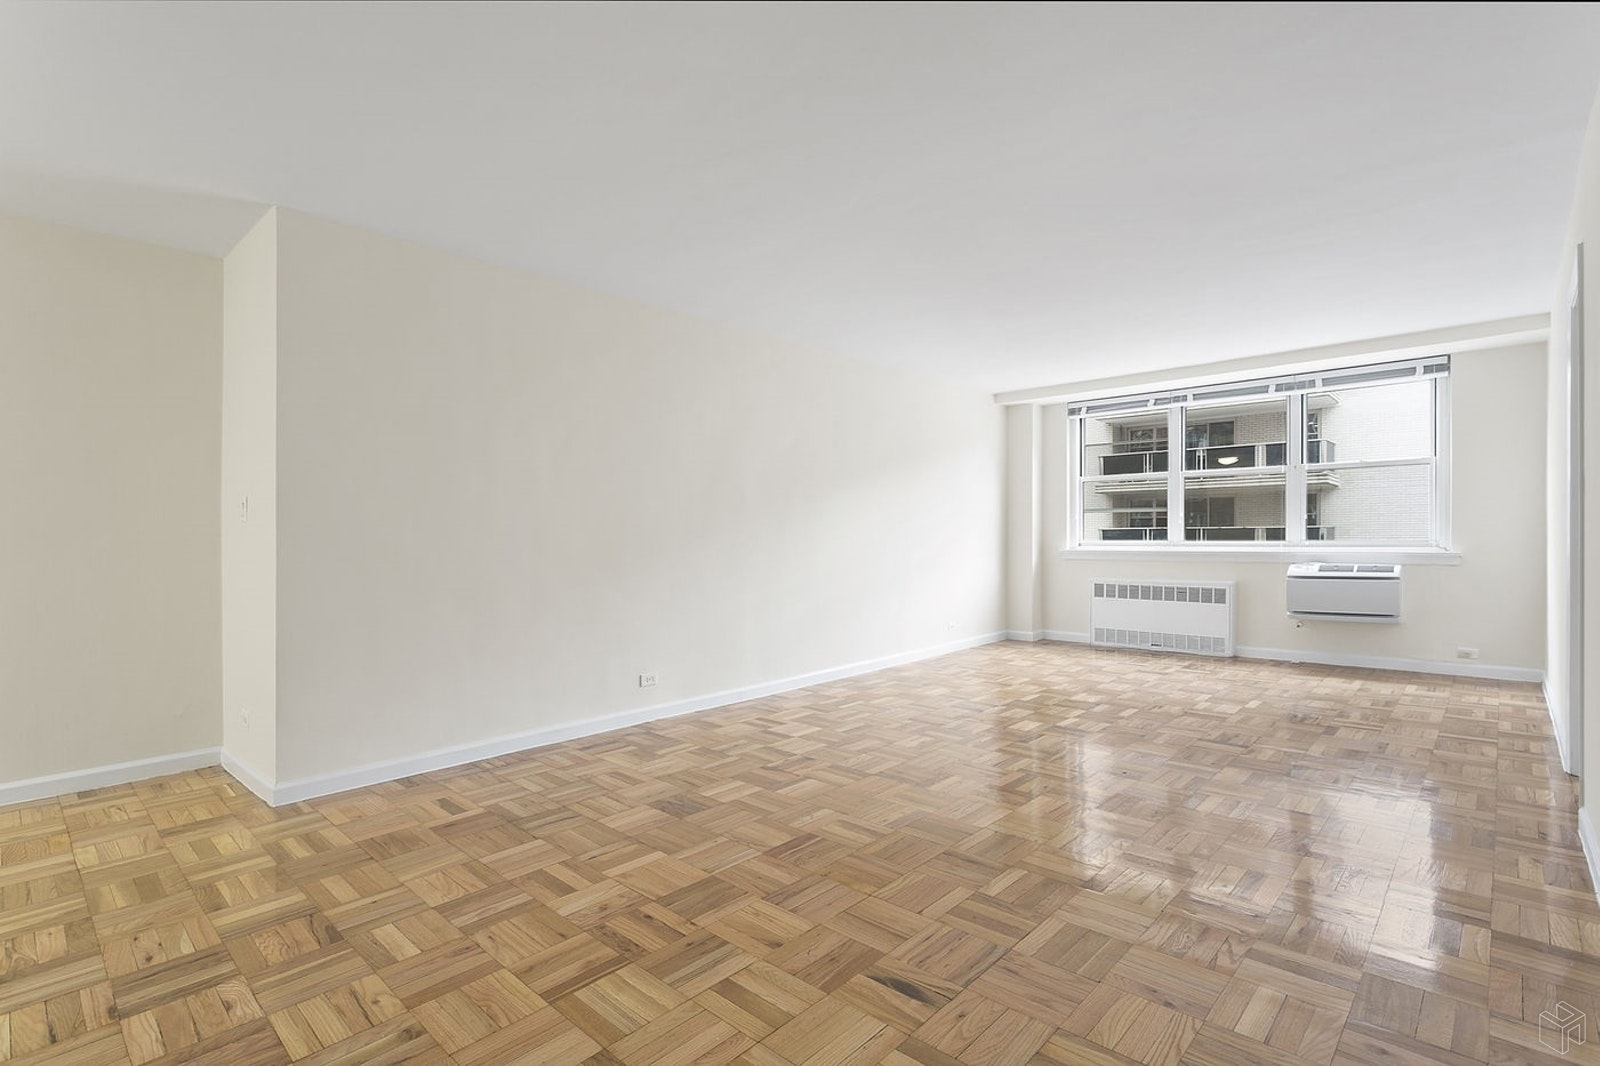 201 East 19th Street, Apt 11H, Manhattan, New York 10003